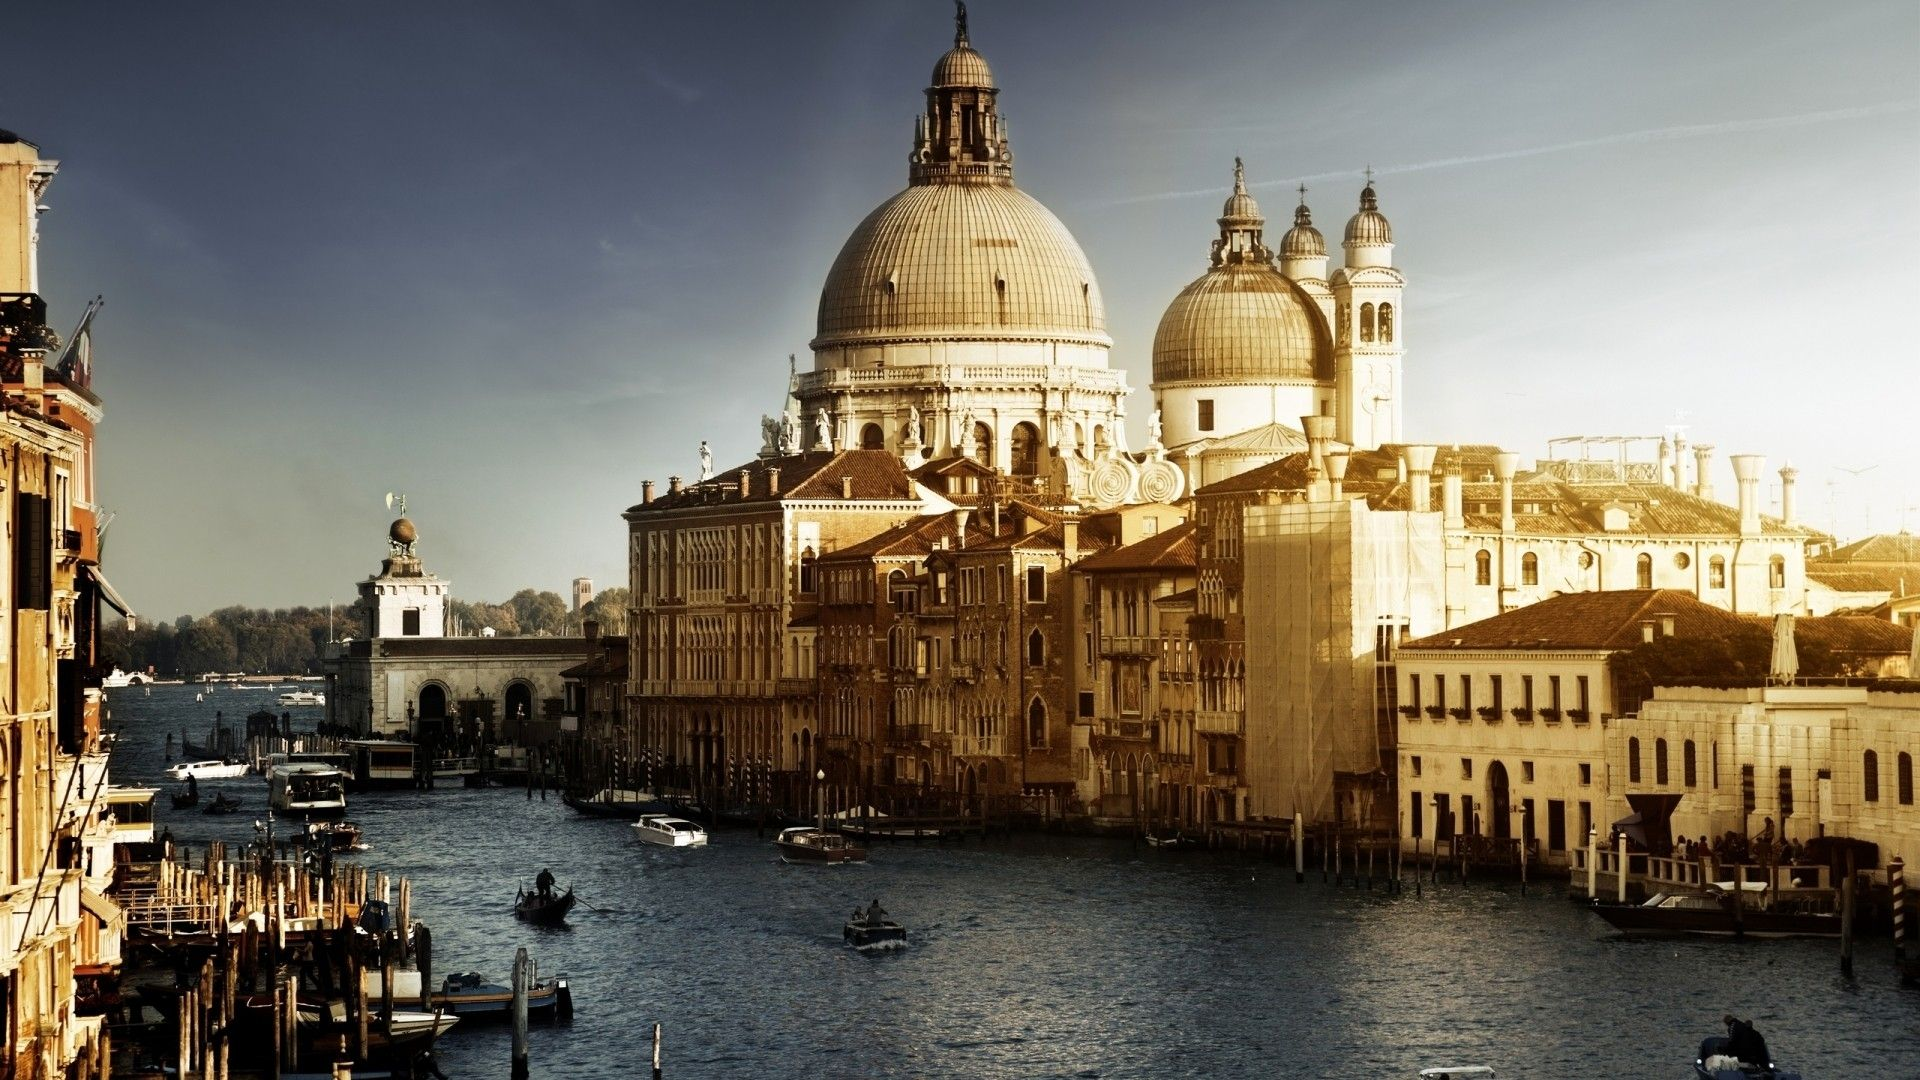 Architecture  Image result for venice italy architecture